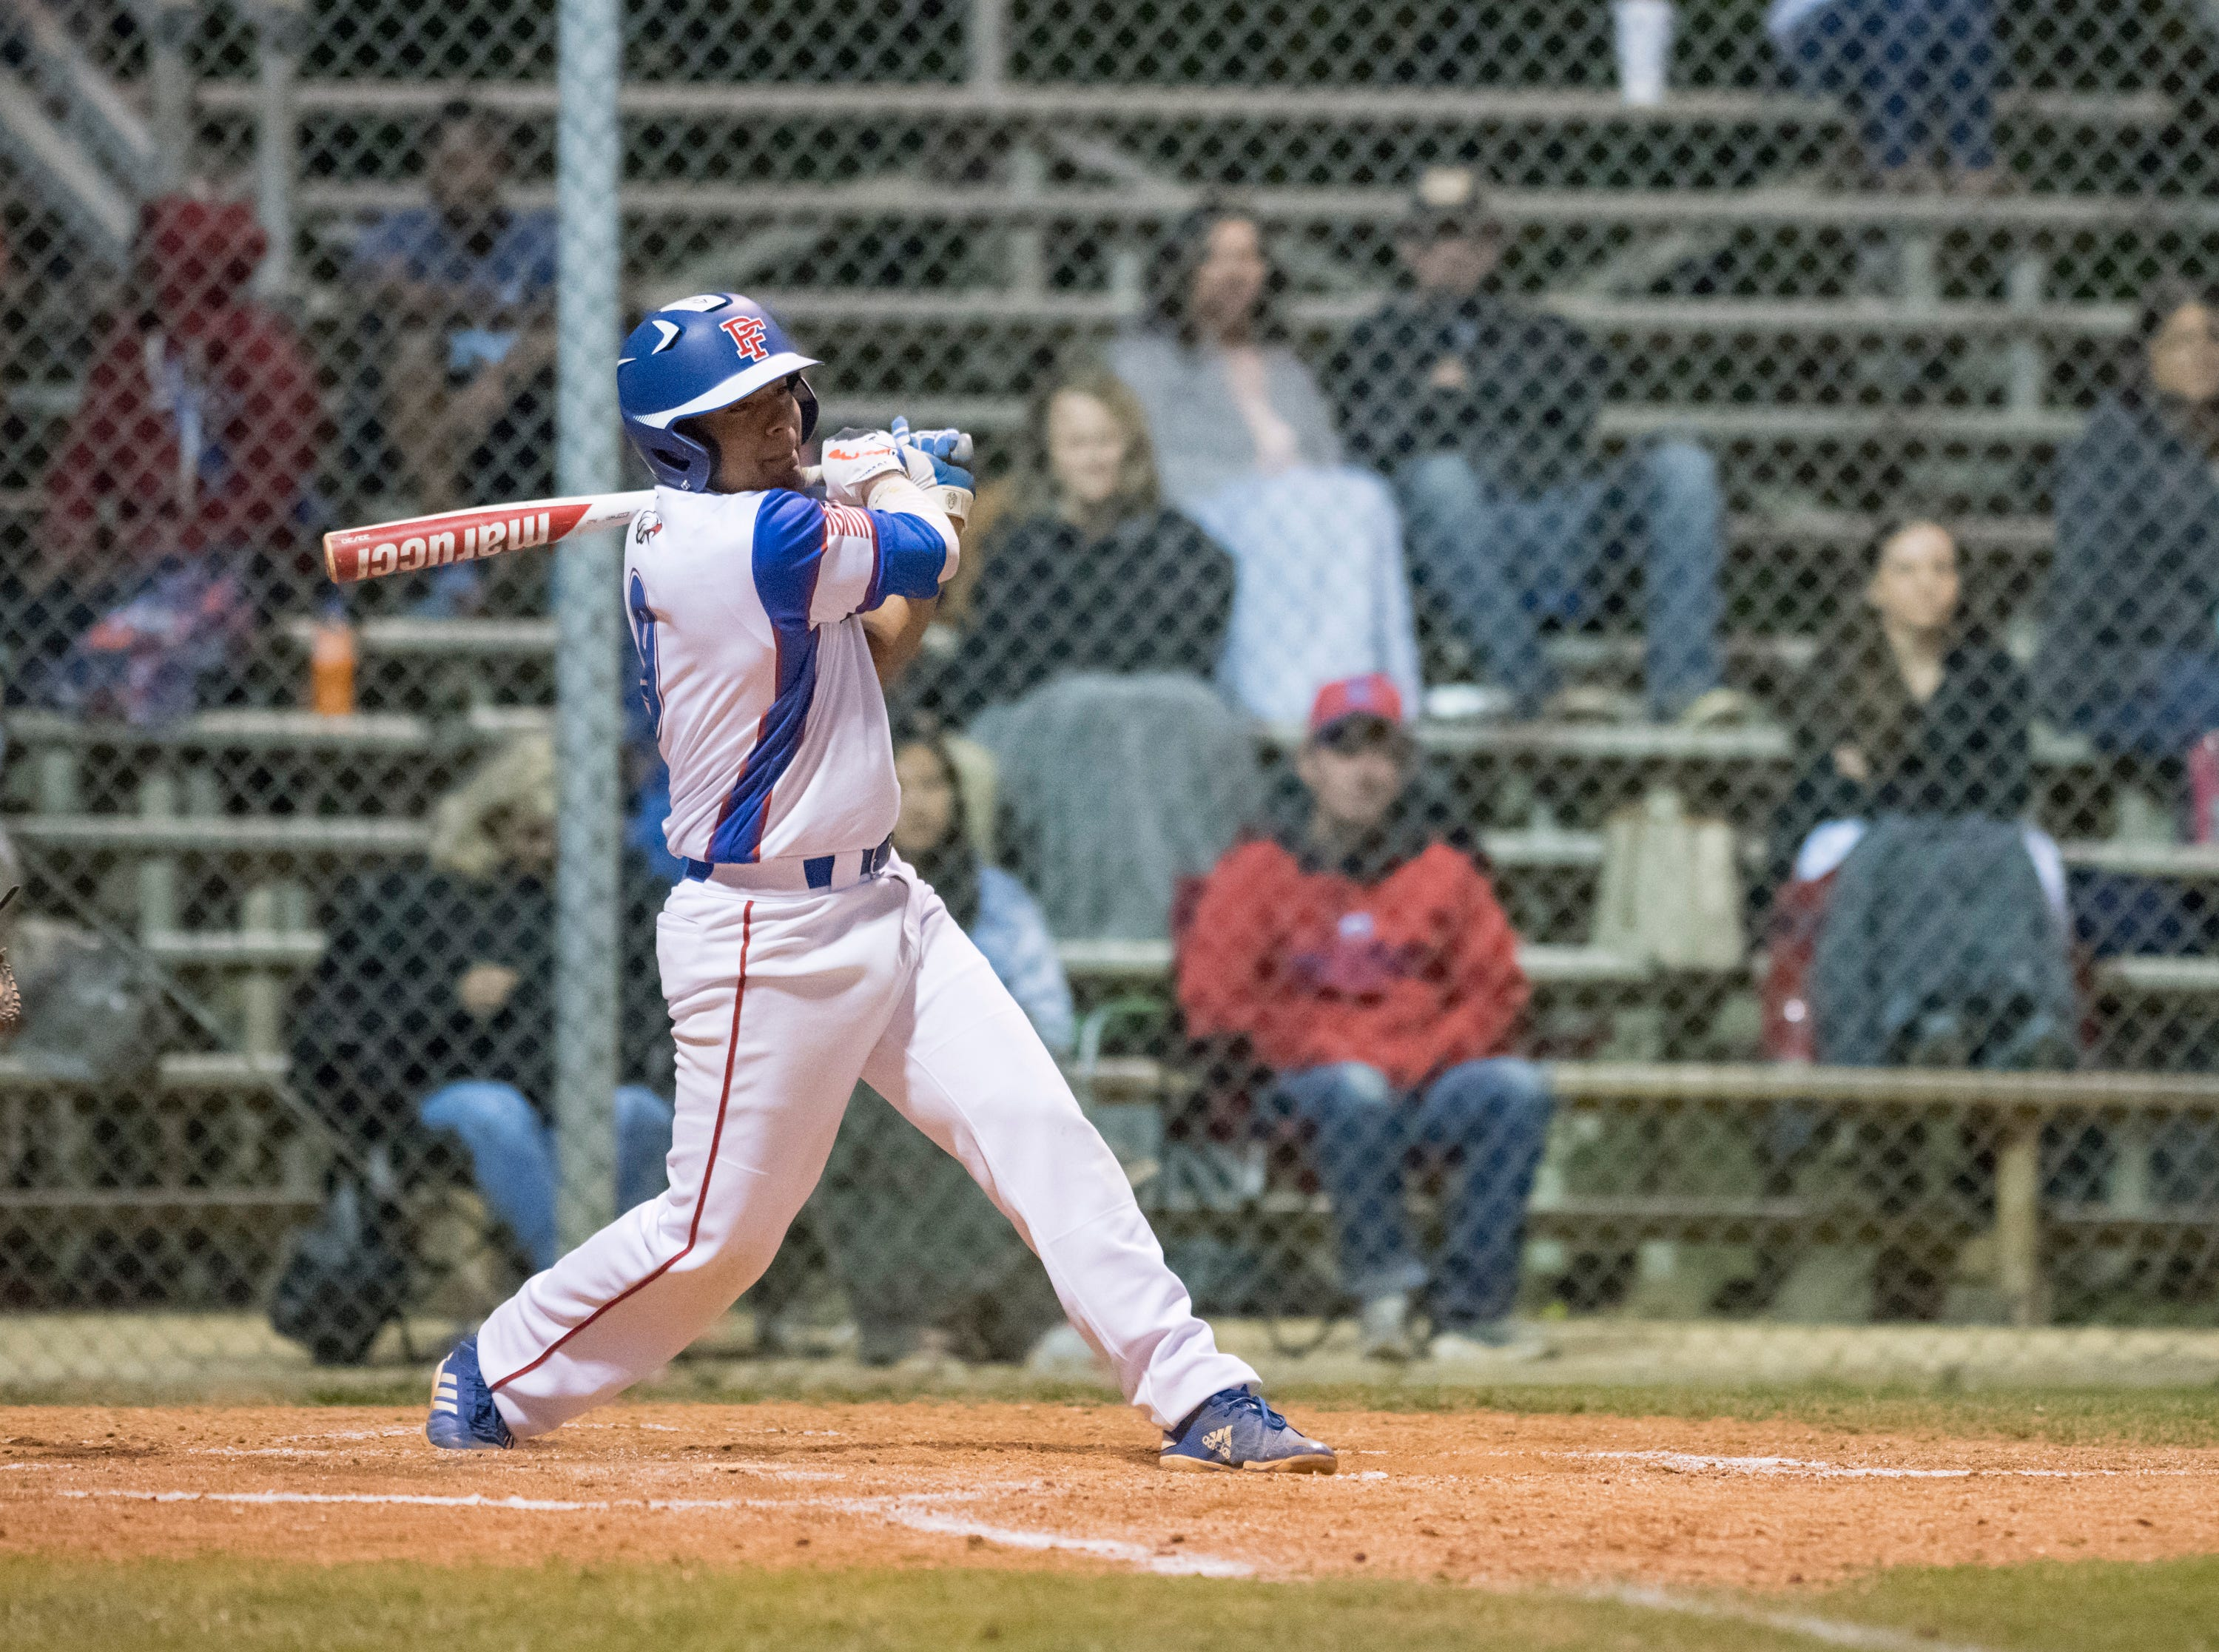 Christian Munoz (9) follows through as he hits a single during the Christian Educational Consortium vs Pine Forest baseball game at Pine Forest High School in Pensacola on Wednesday, April 3, 2019.